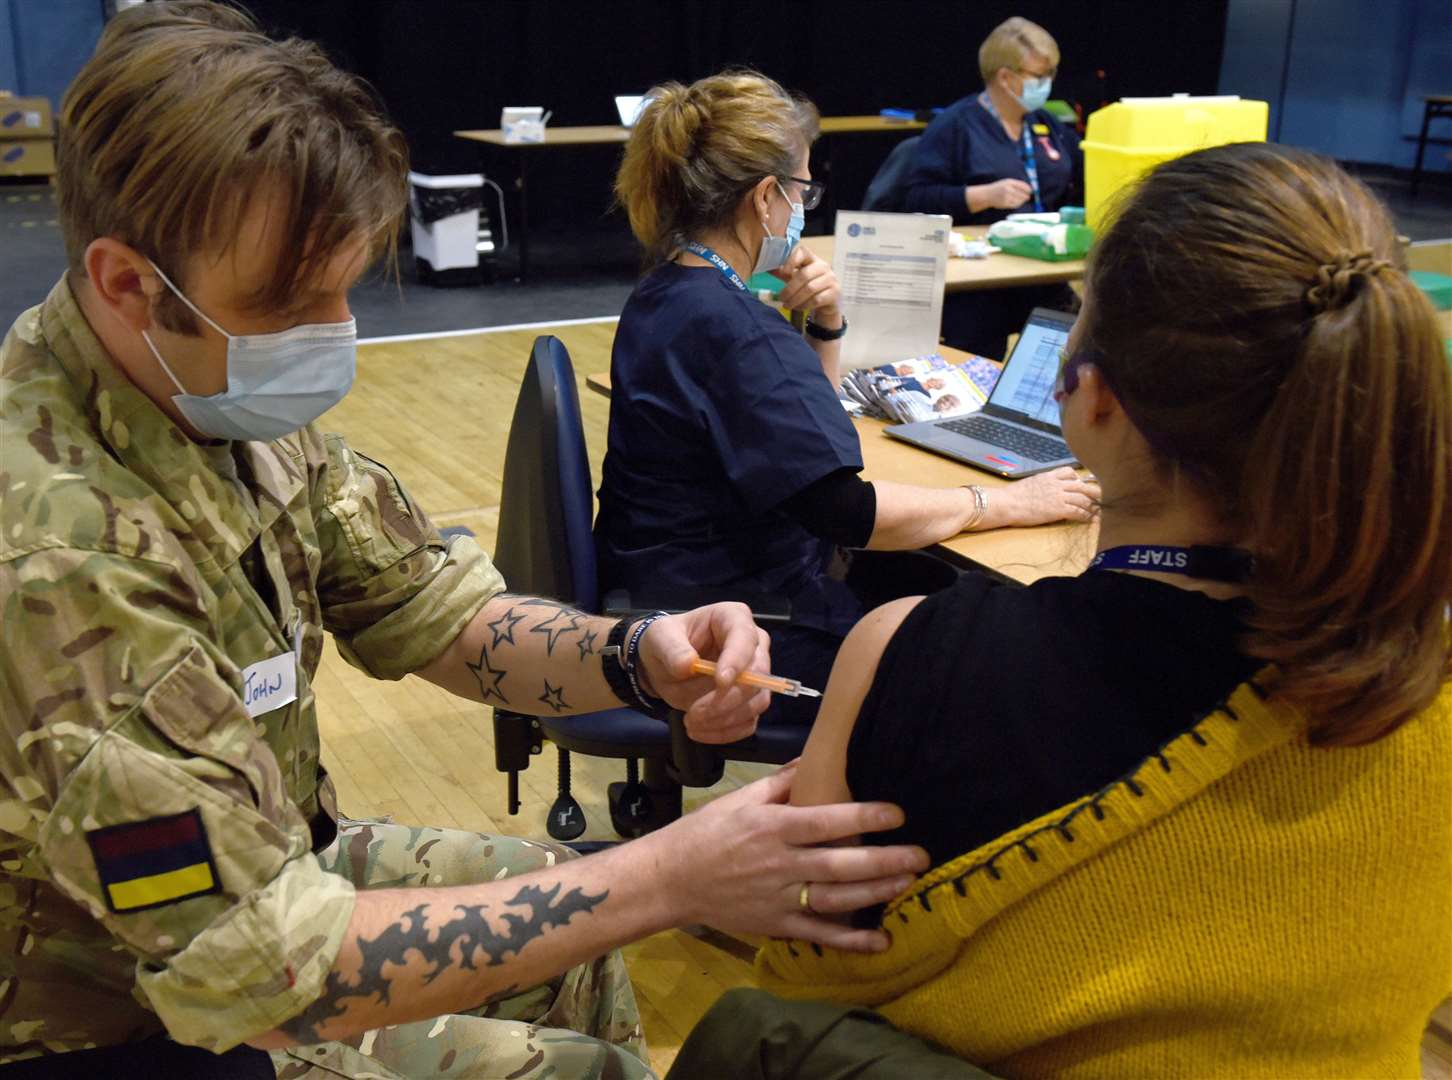 Mass Coronavirus Vaccination Centre now open at the King's Lynn Corn Exchange, Tuesday Market Place...Beth Harper having her Vaccination. (44205300)